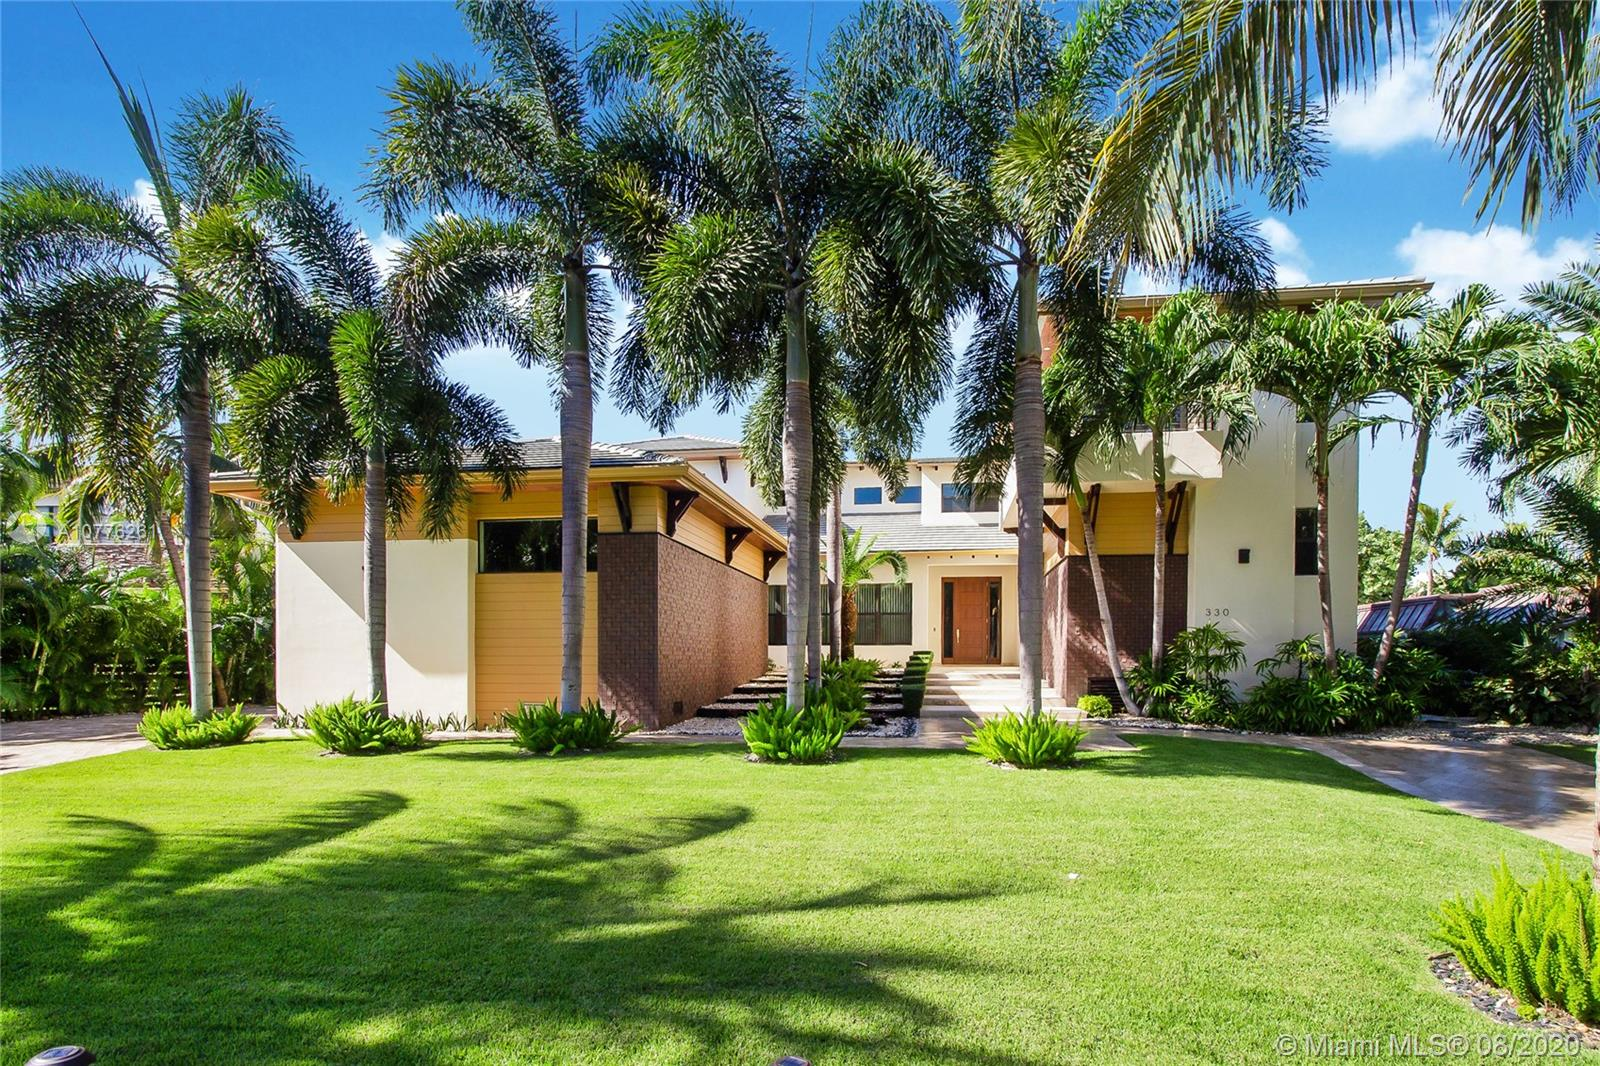 330 Caribbean Rd, one of homes for sale in Key Biscayne